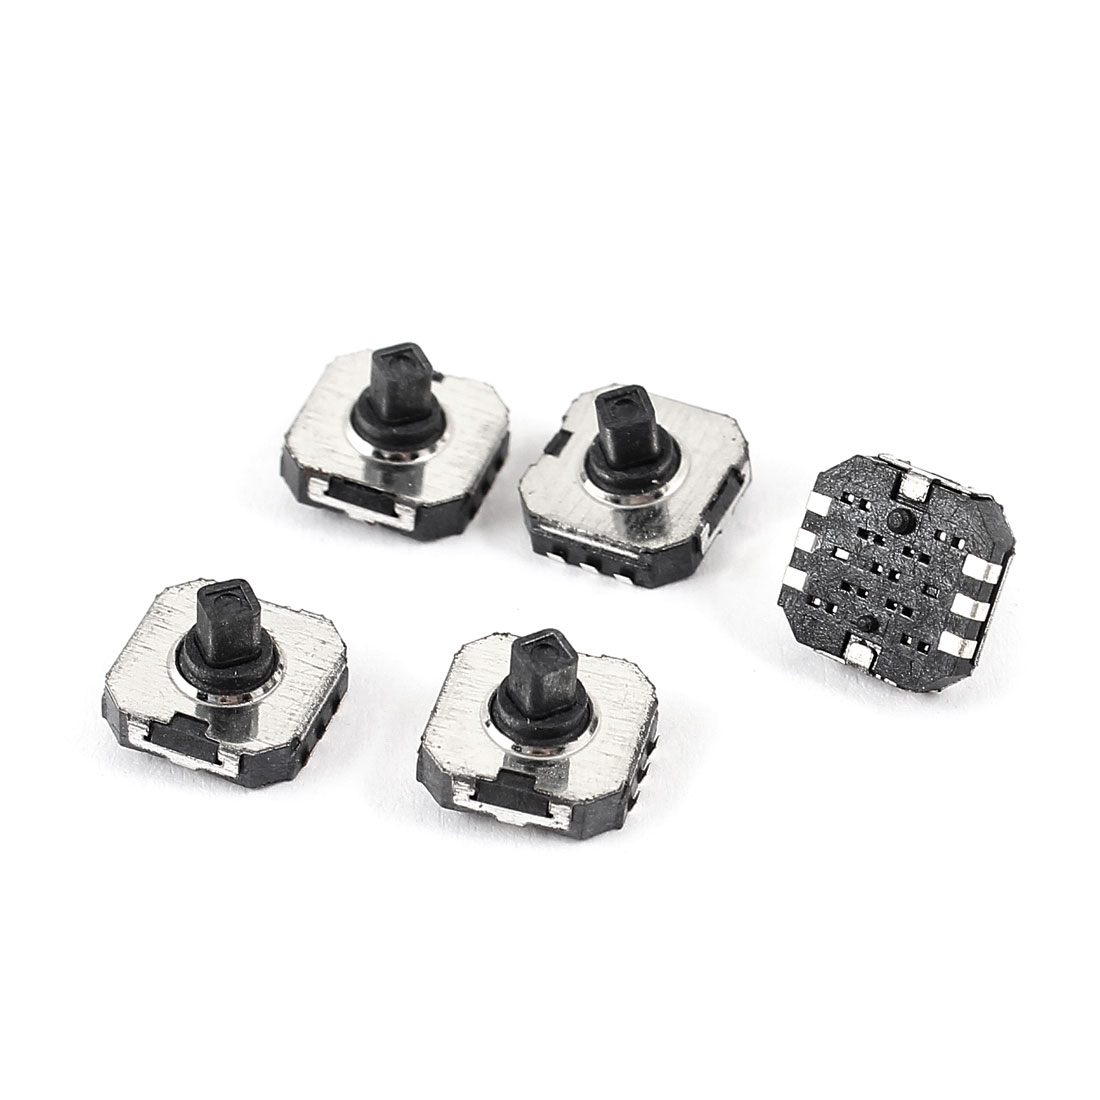 5pcs SMD SMT Panel PCB 6-Terminal 5 Way Momentary Tactile Switch 7x7x5mm